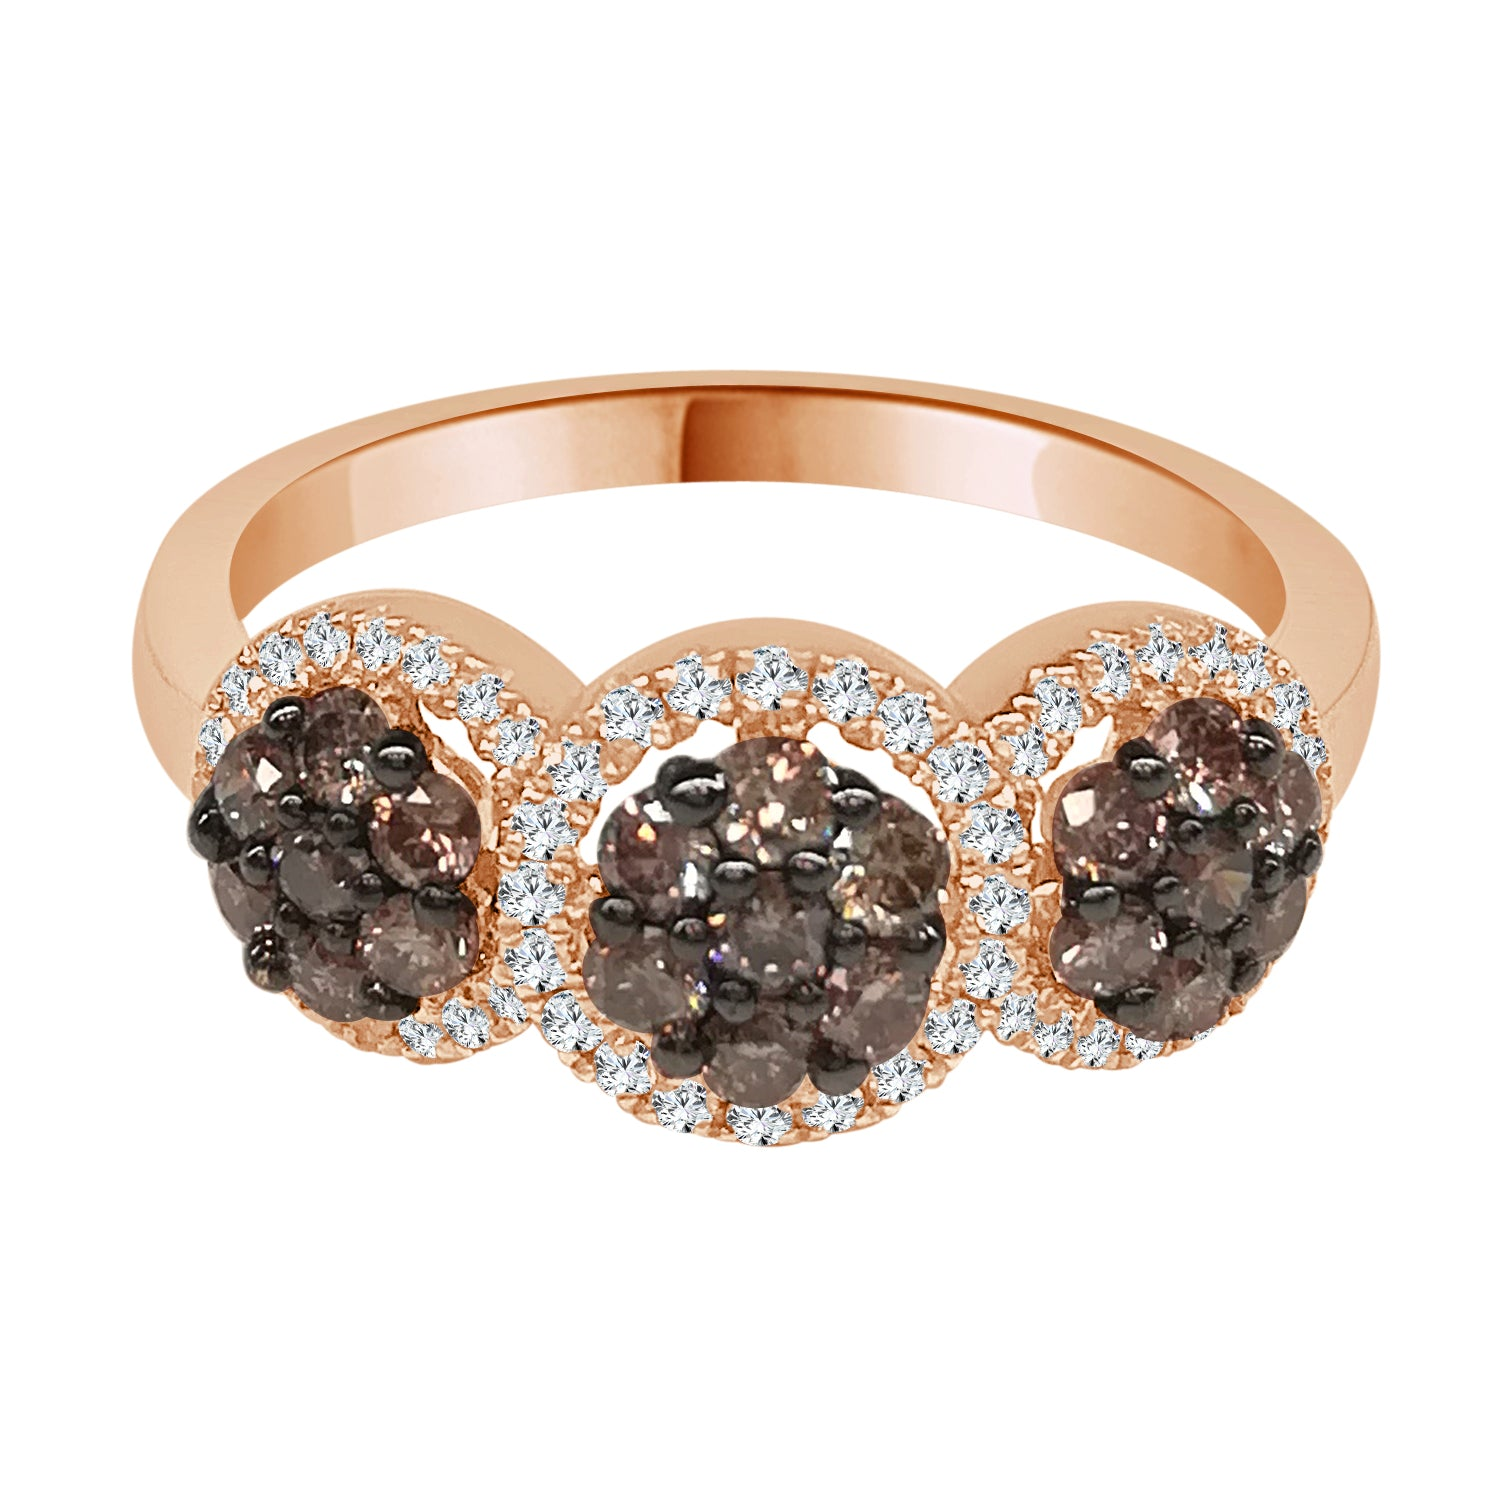 14 Karat Rose Gold 0.19 Carat Diamond Ring